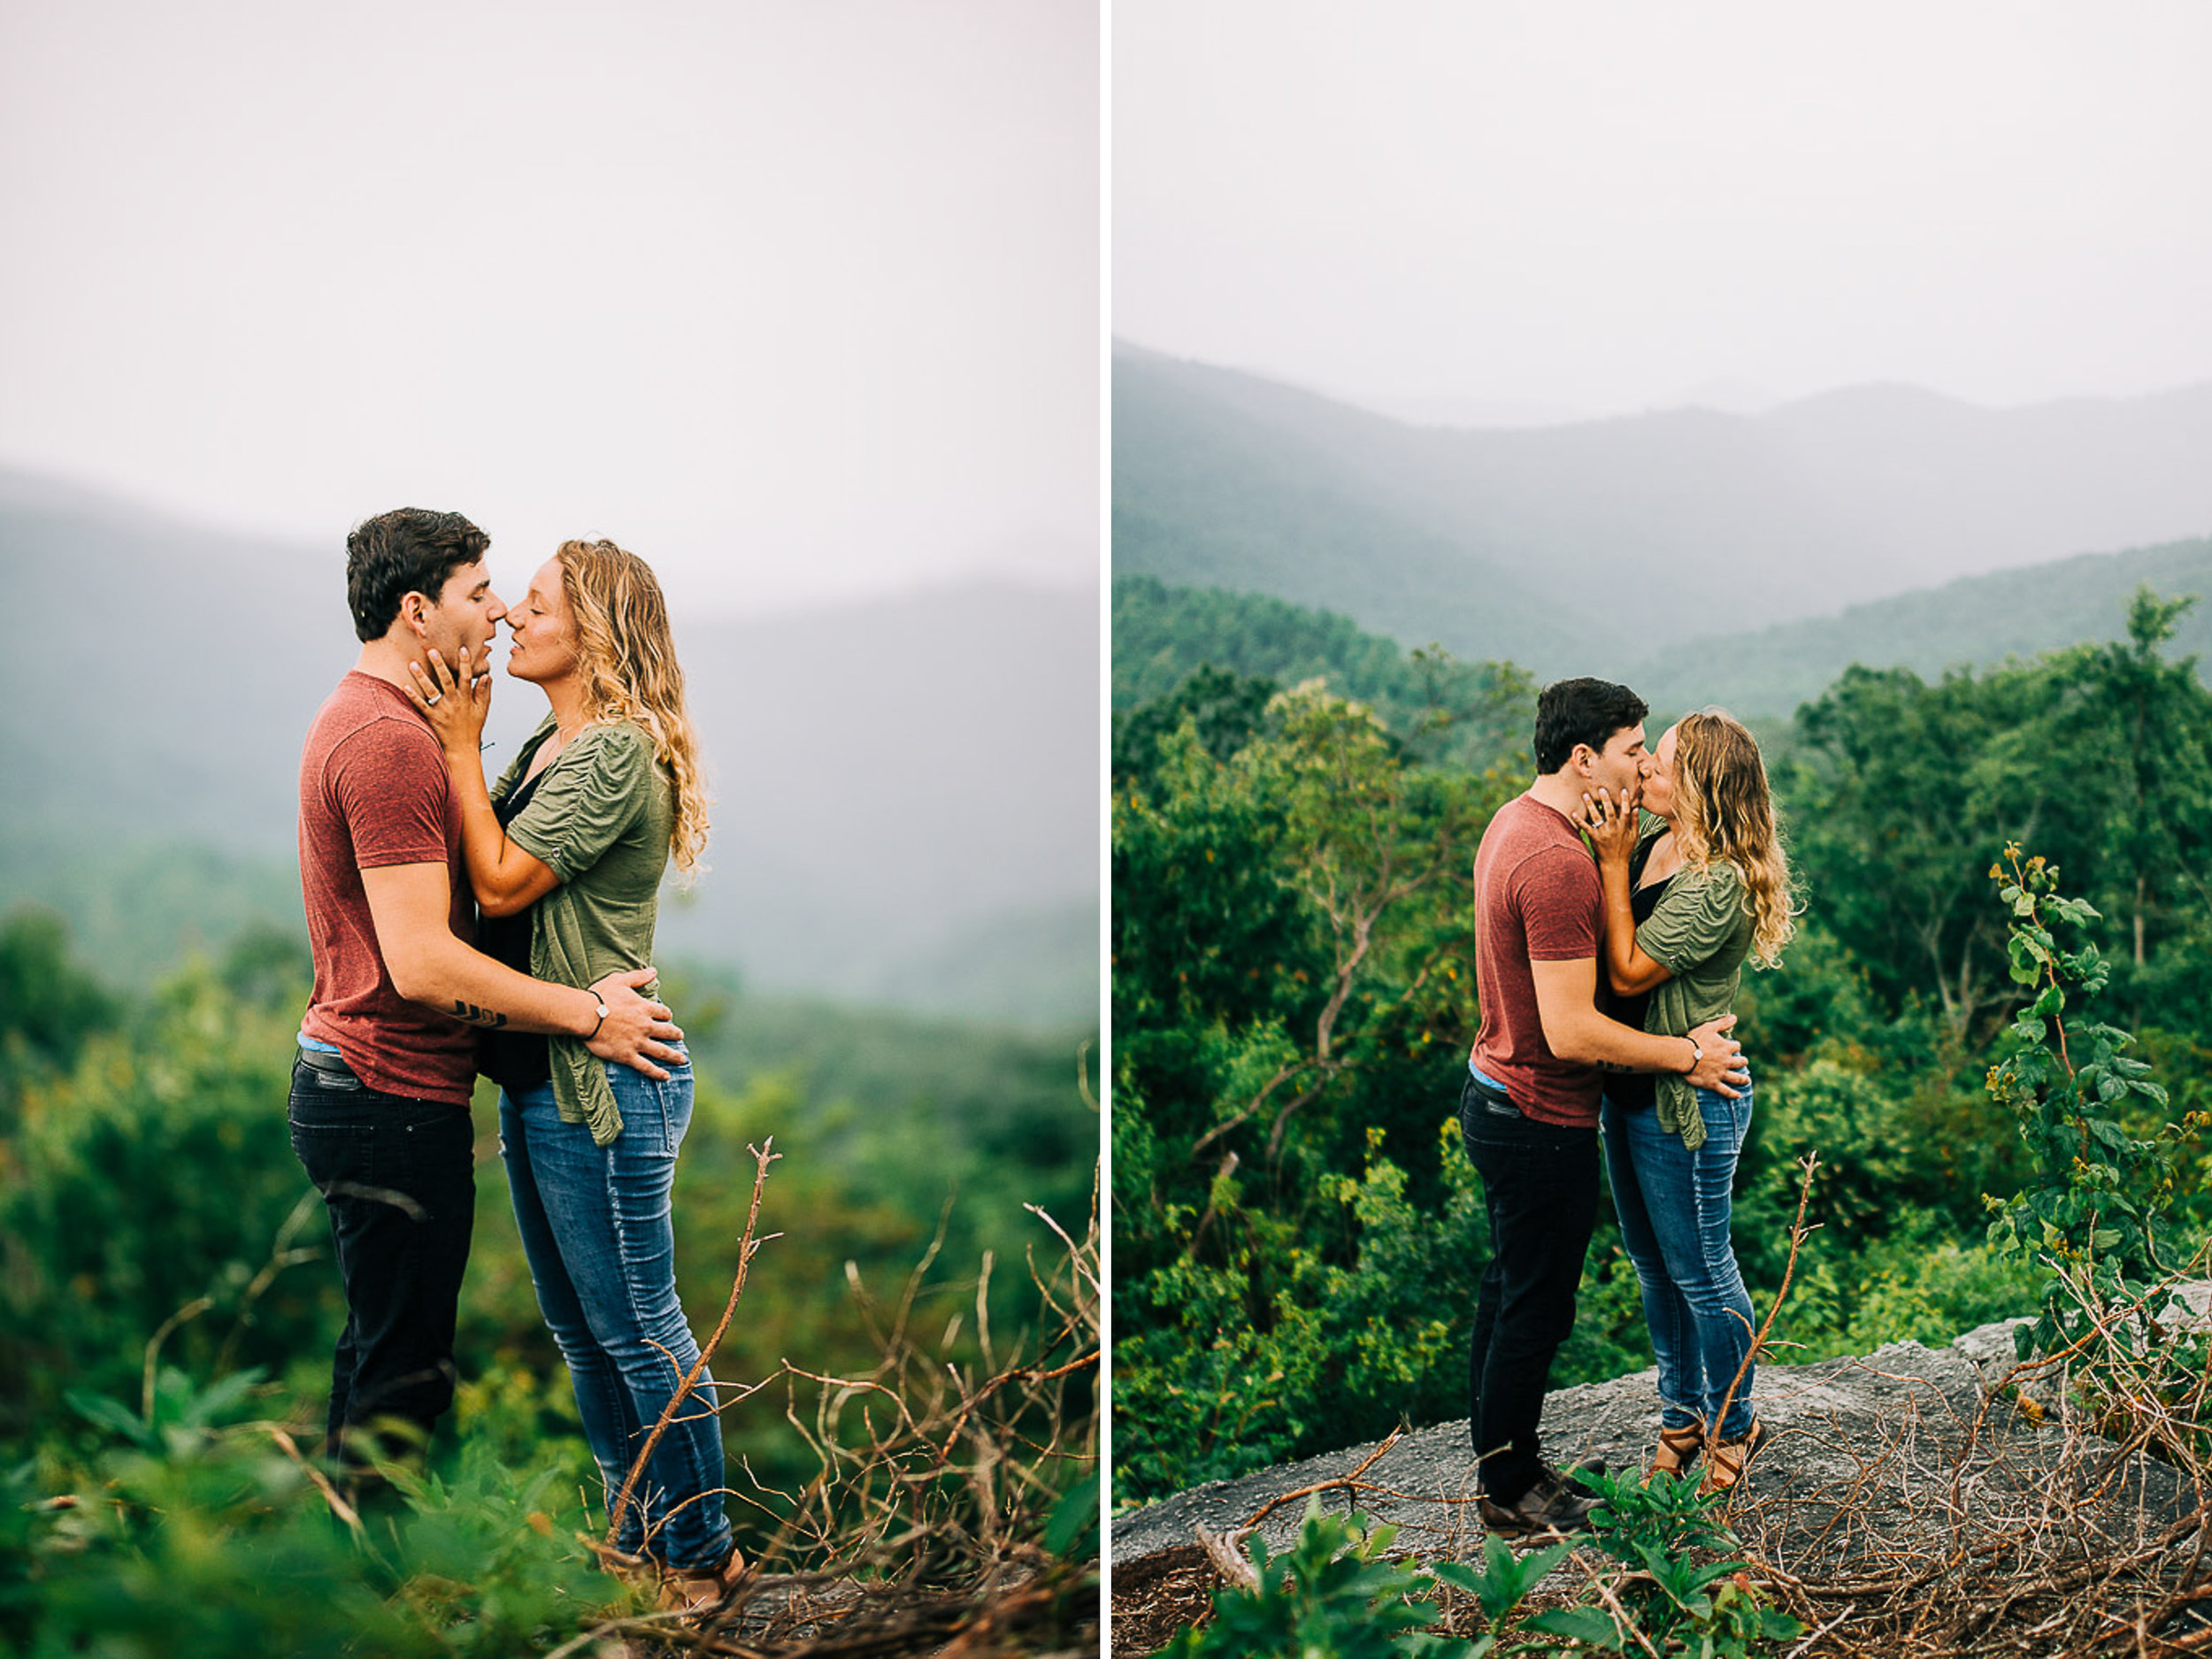 Mountain Engagement, Summer Engaement, Engaged, Engaement Portriats, Engagement Pictures, 02.jpg